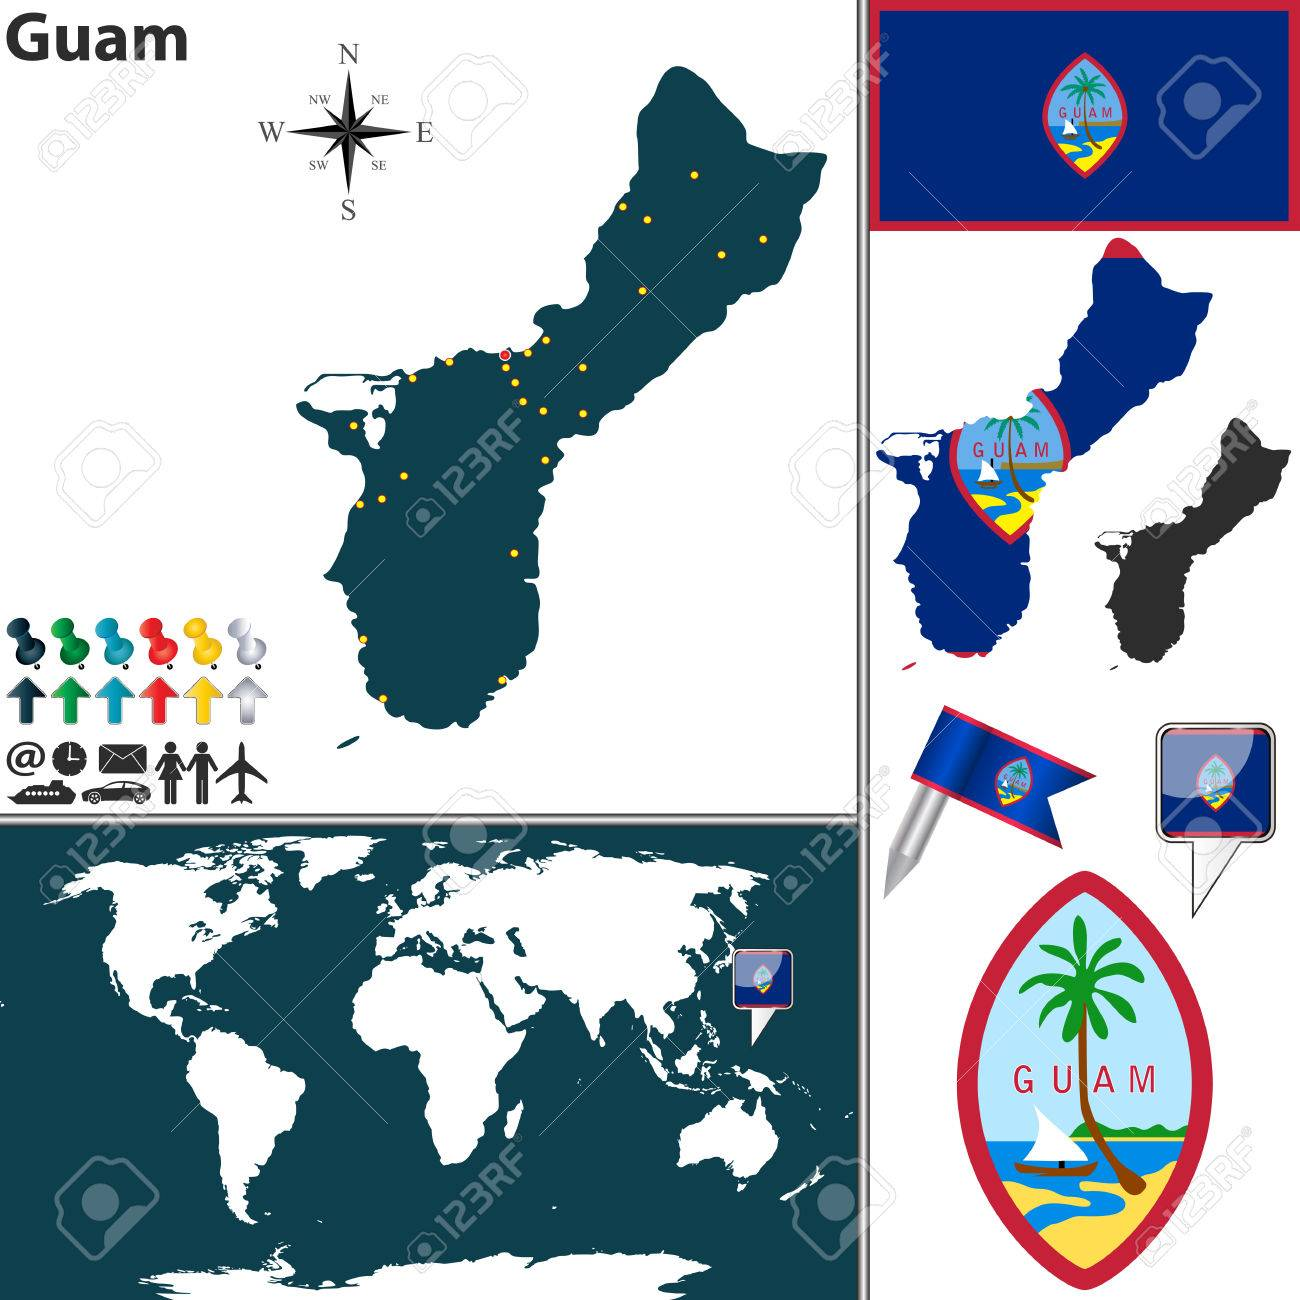 Guam On A World Map.Map Of Guam With Regions Coat Of Arms And Location On World